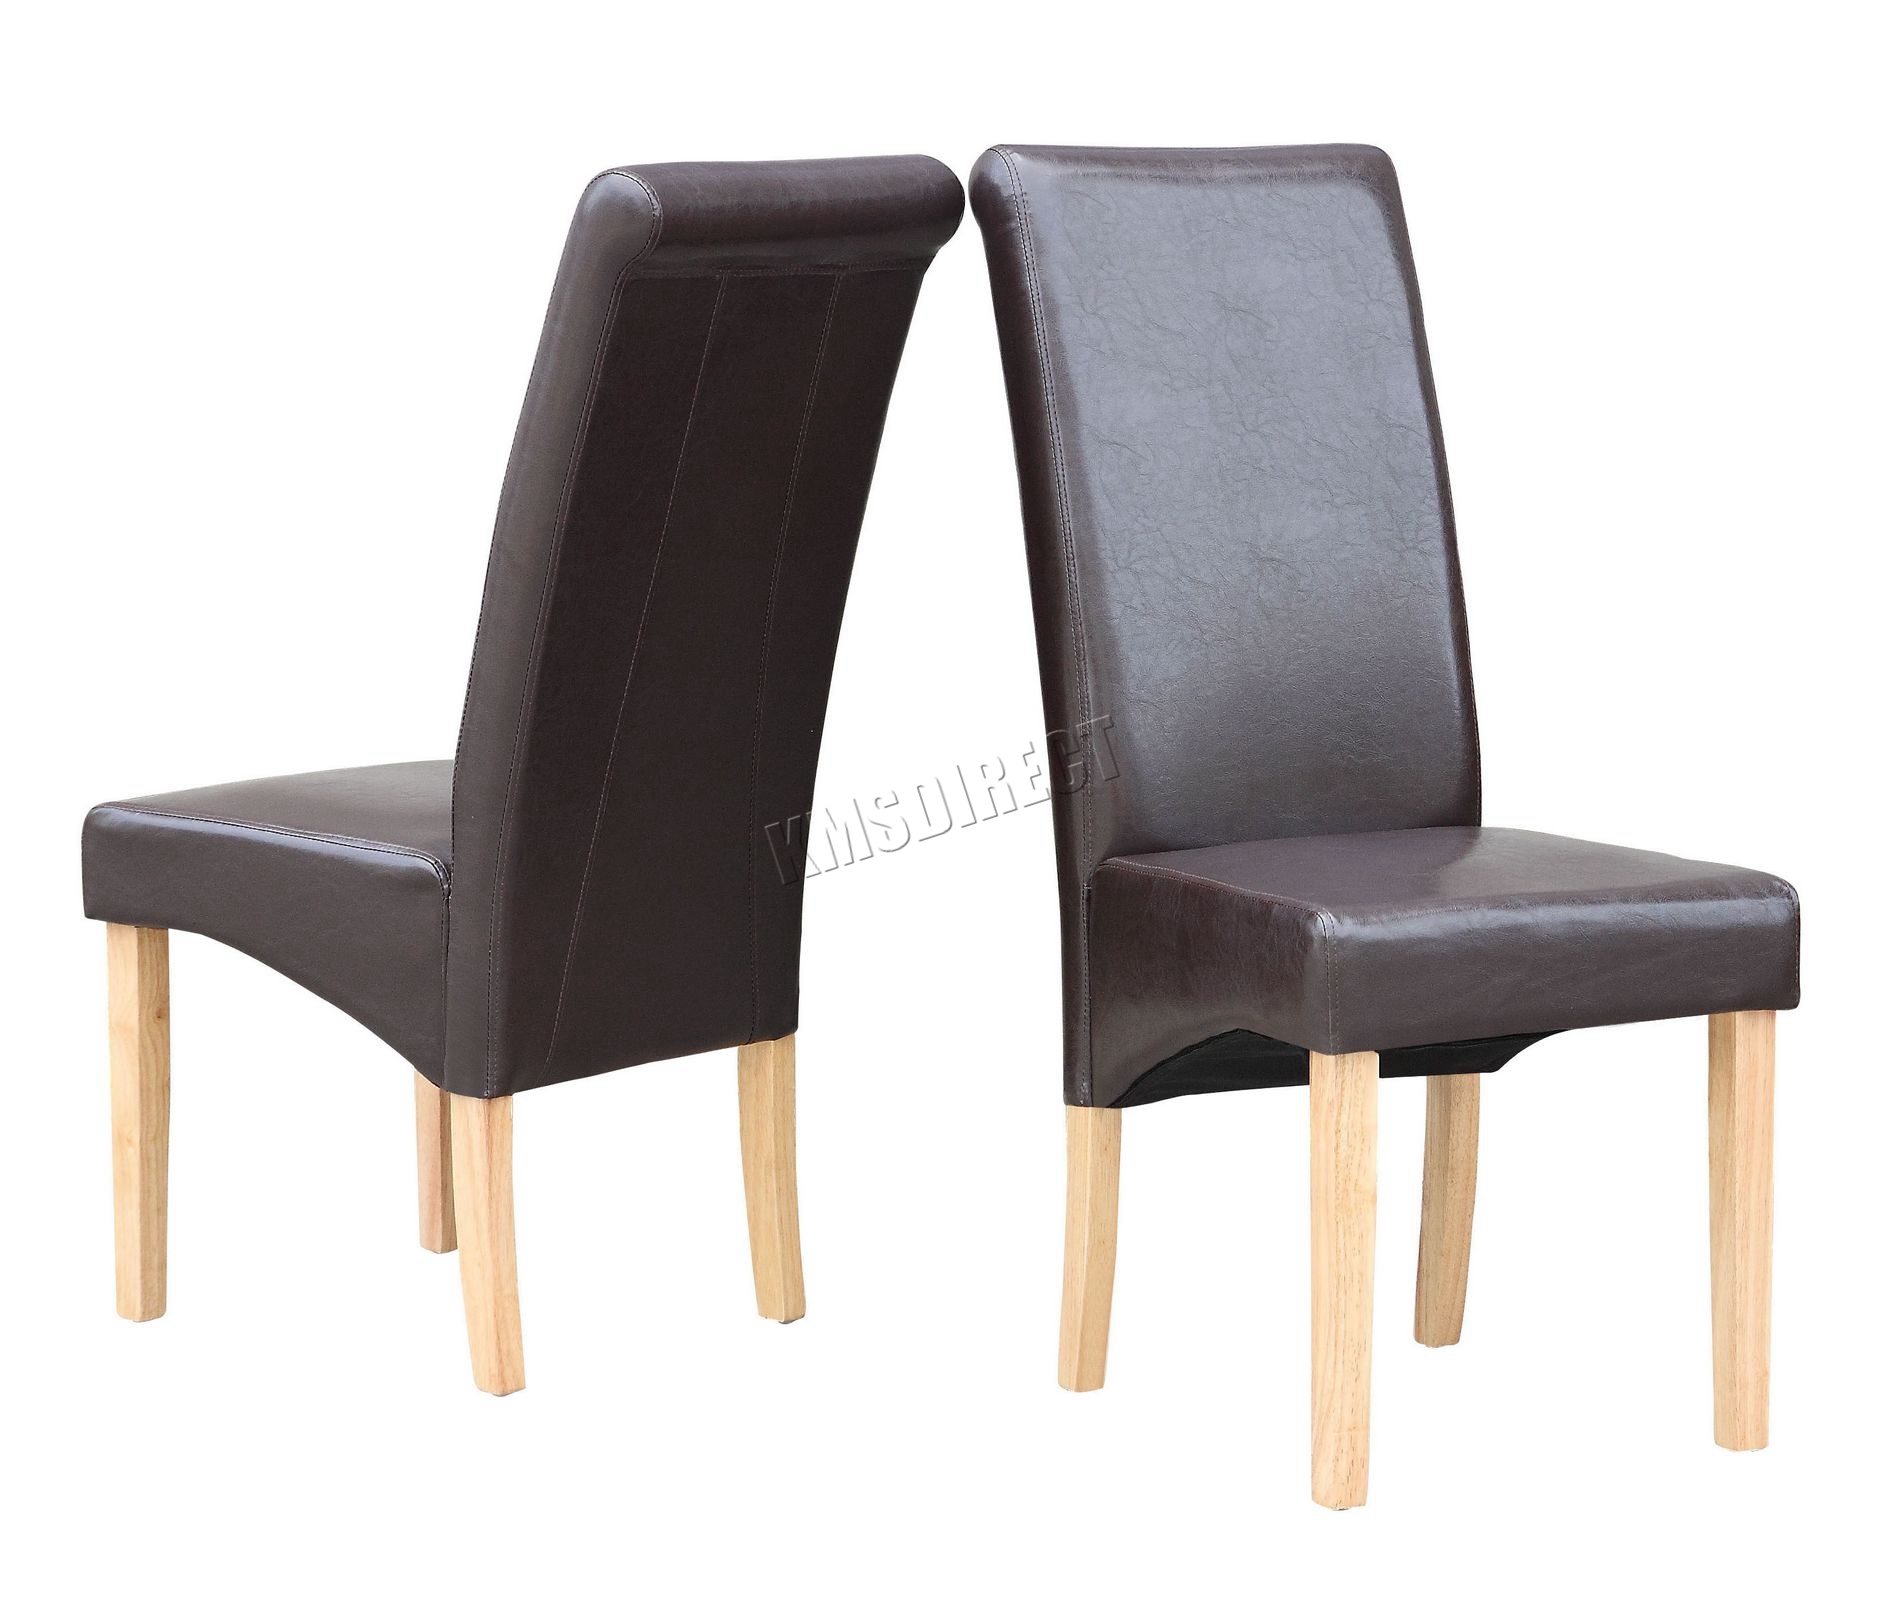 New brown faux leather dining chairs roll top scroll high for Kitchen chairs